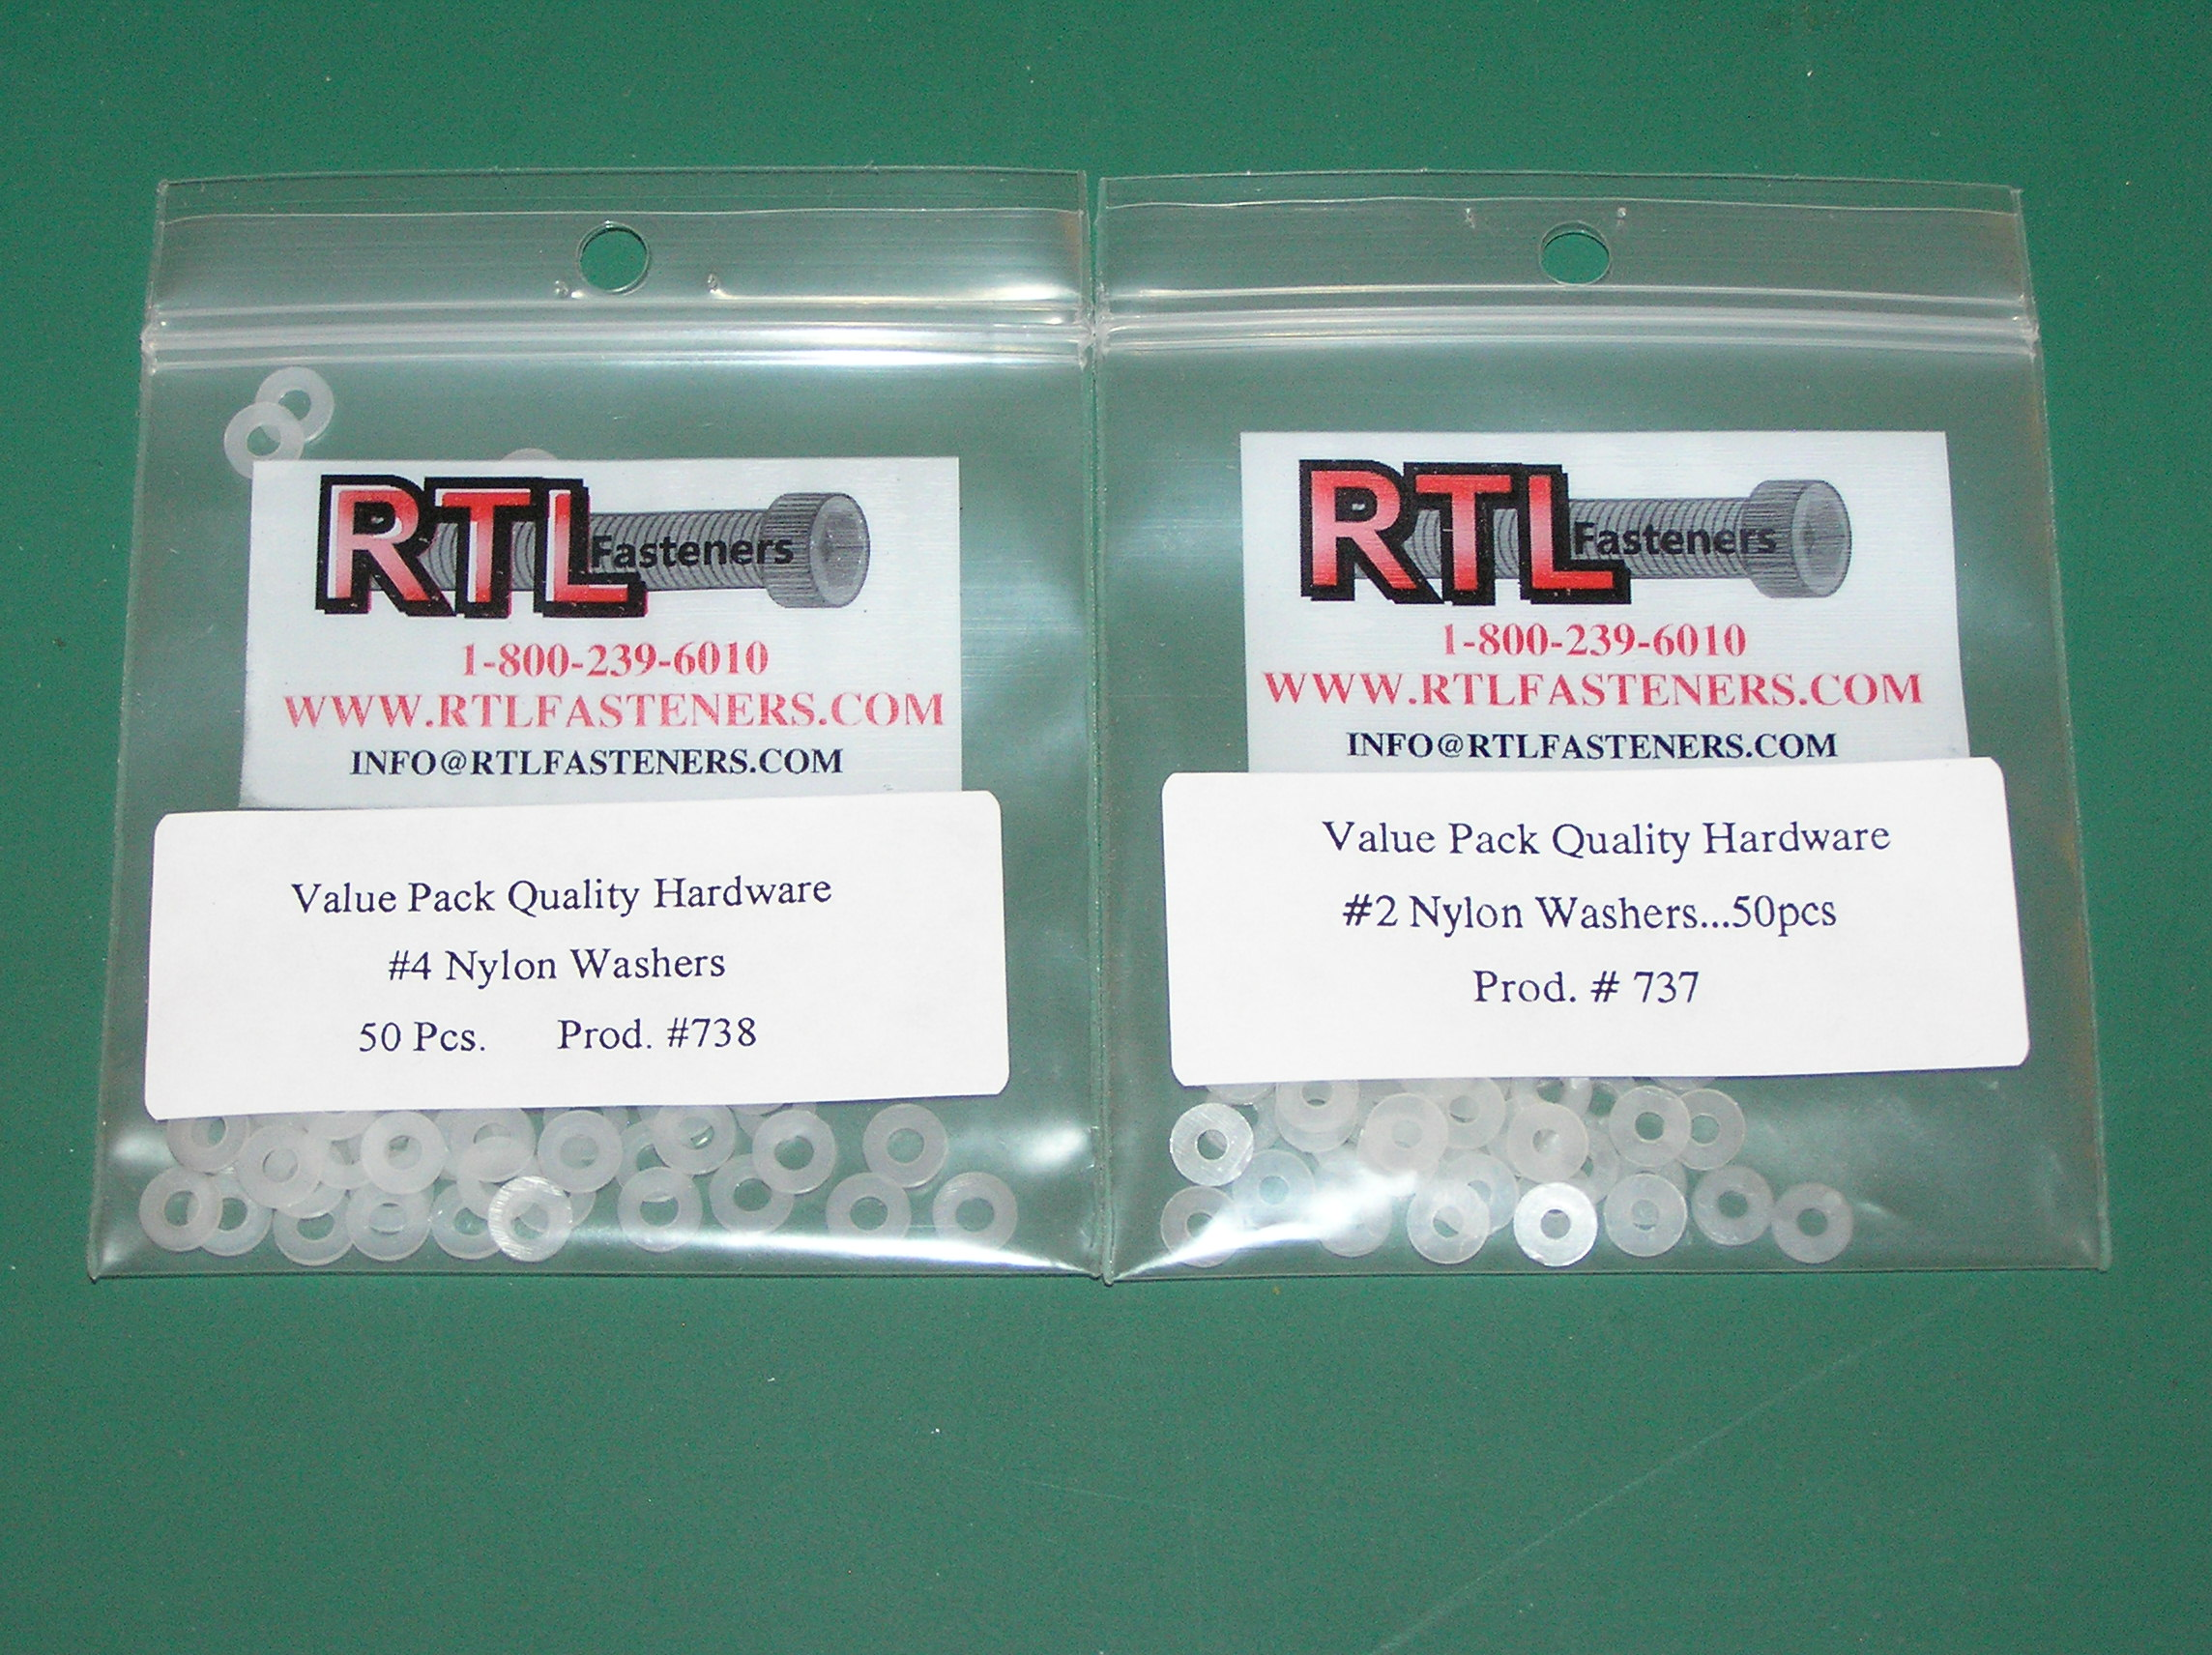 #2 and #3 nylon washers are included in the Servo Mounting Assortment!